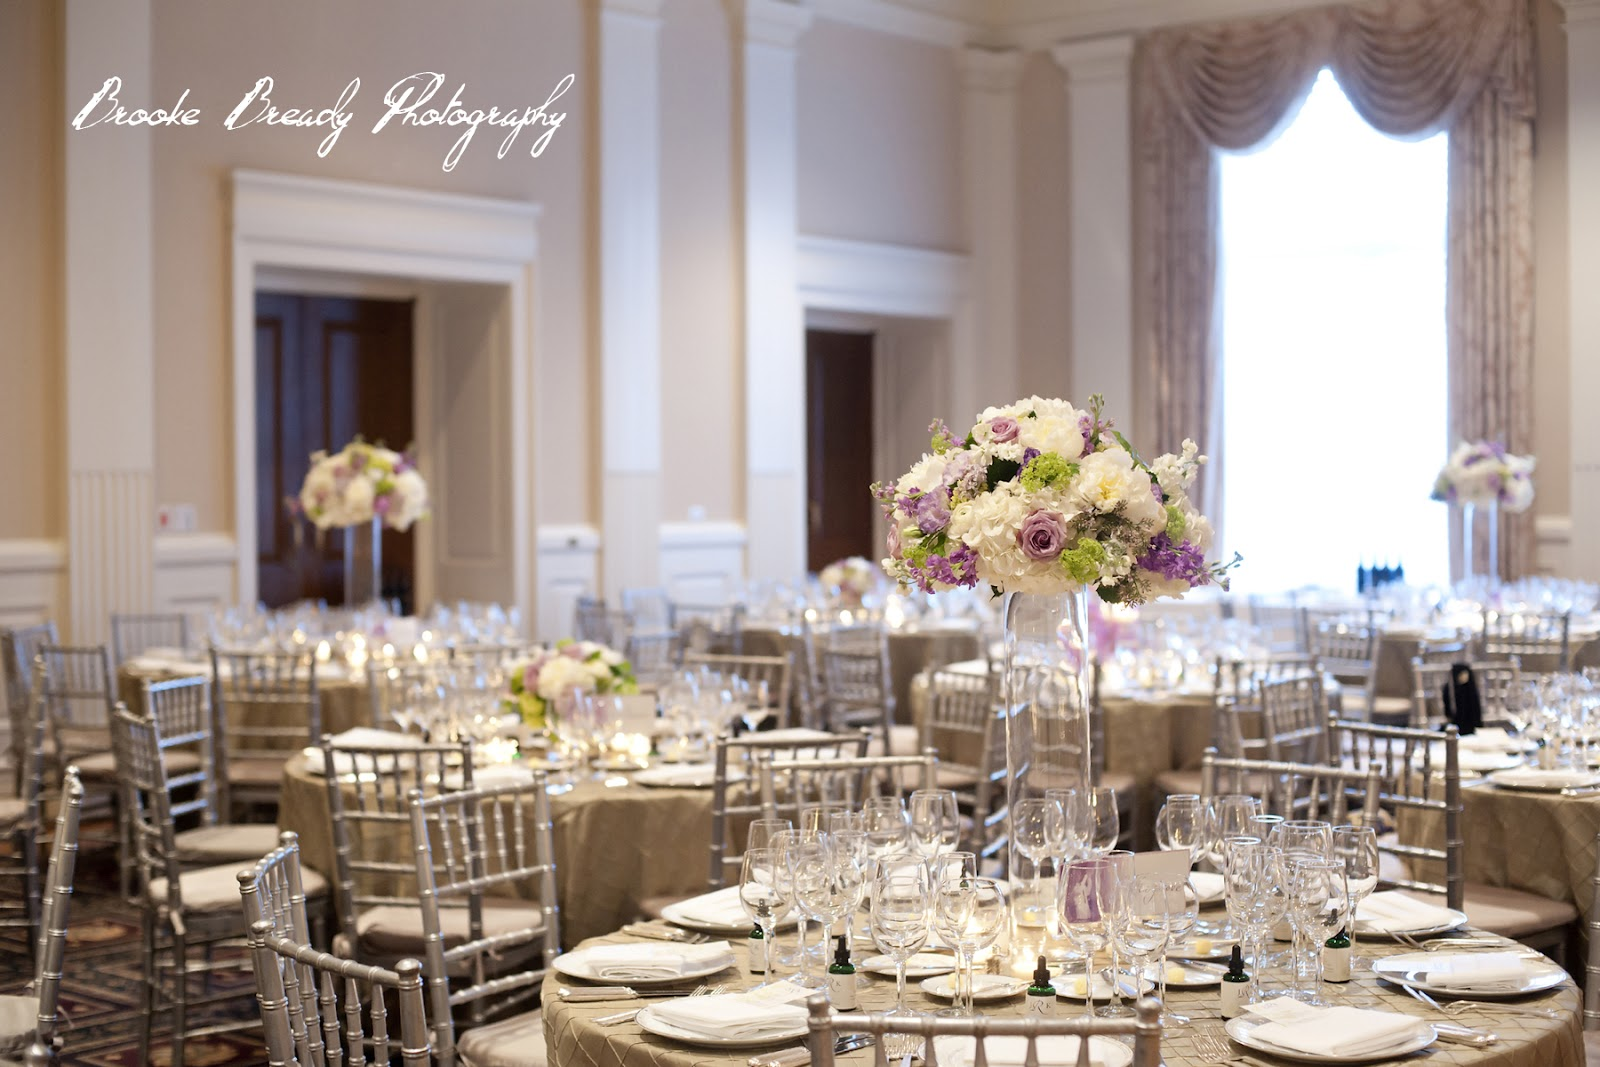 Brooke Bready Photography Joy Amp Kevin Tie The Knot At